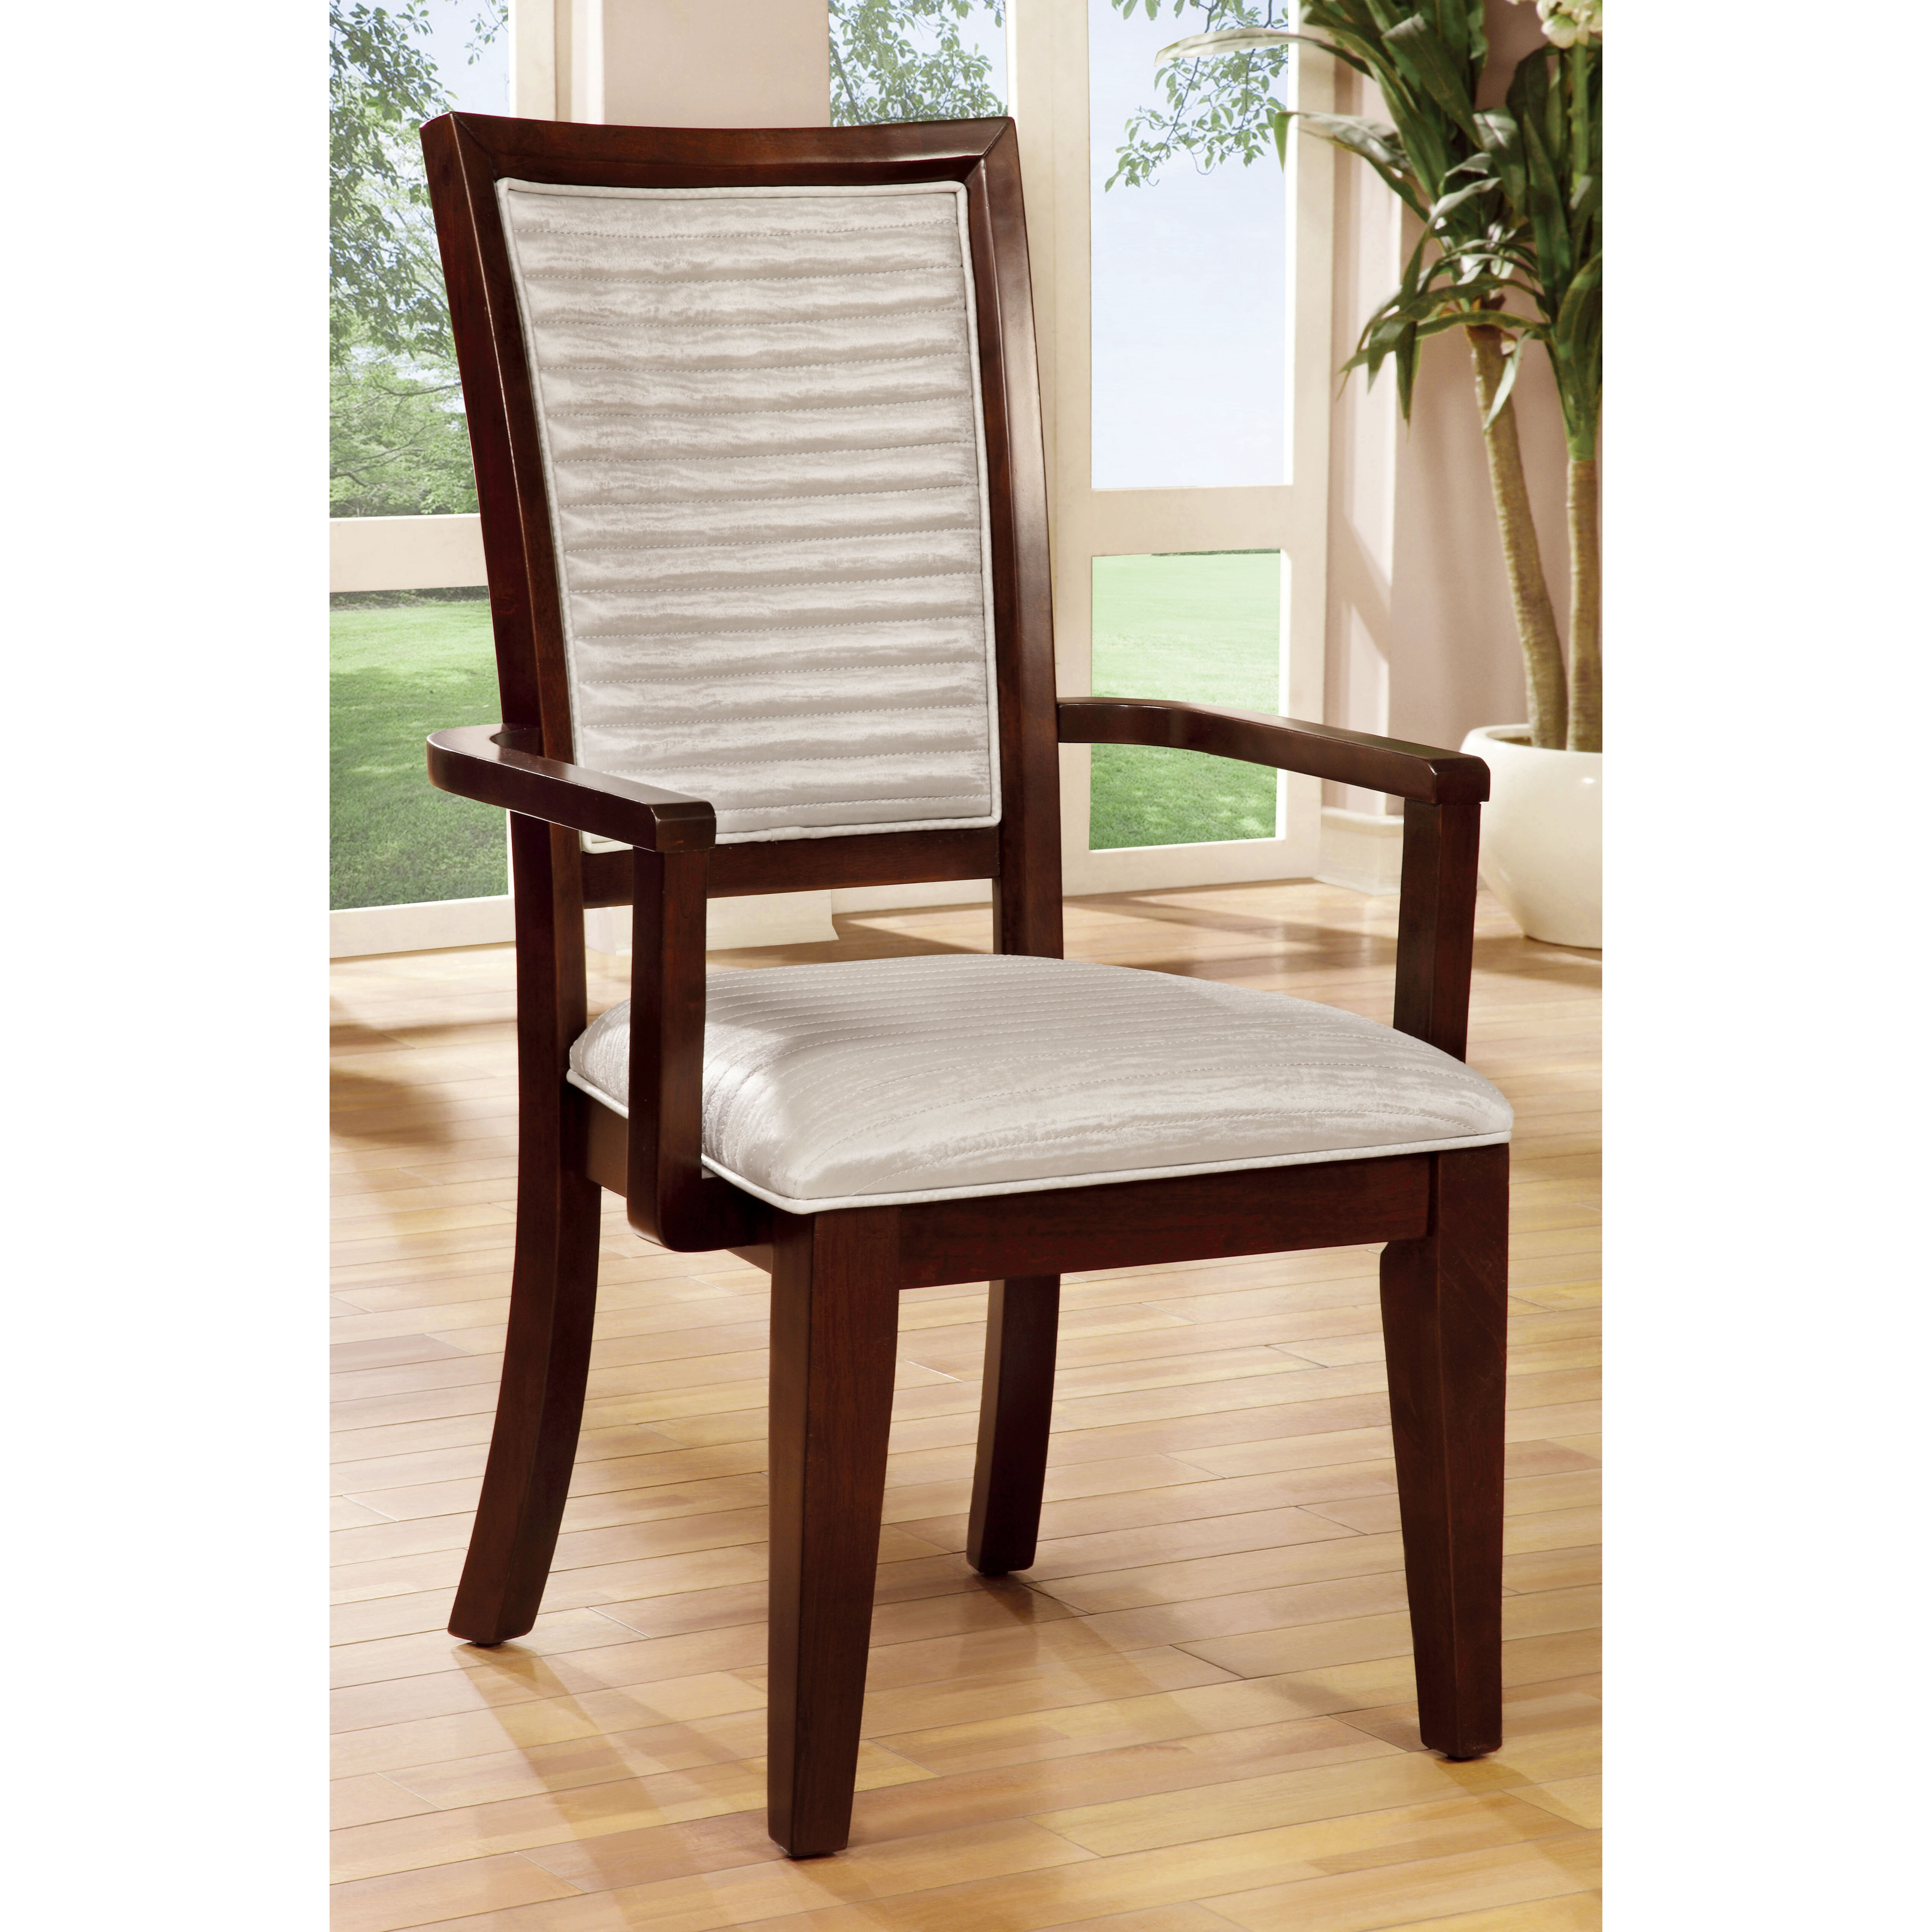 Dining Room Chairs With Arms: Bisset Dining Arm Chair